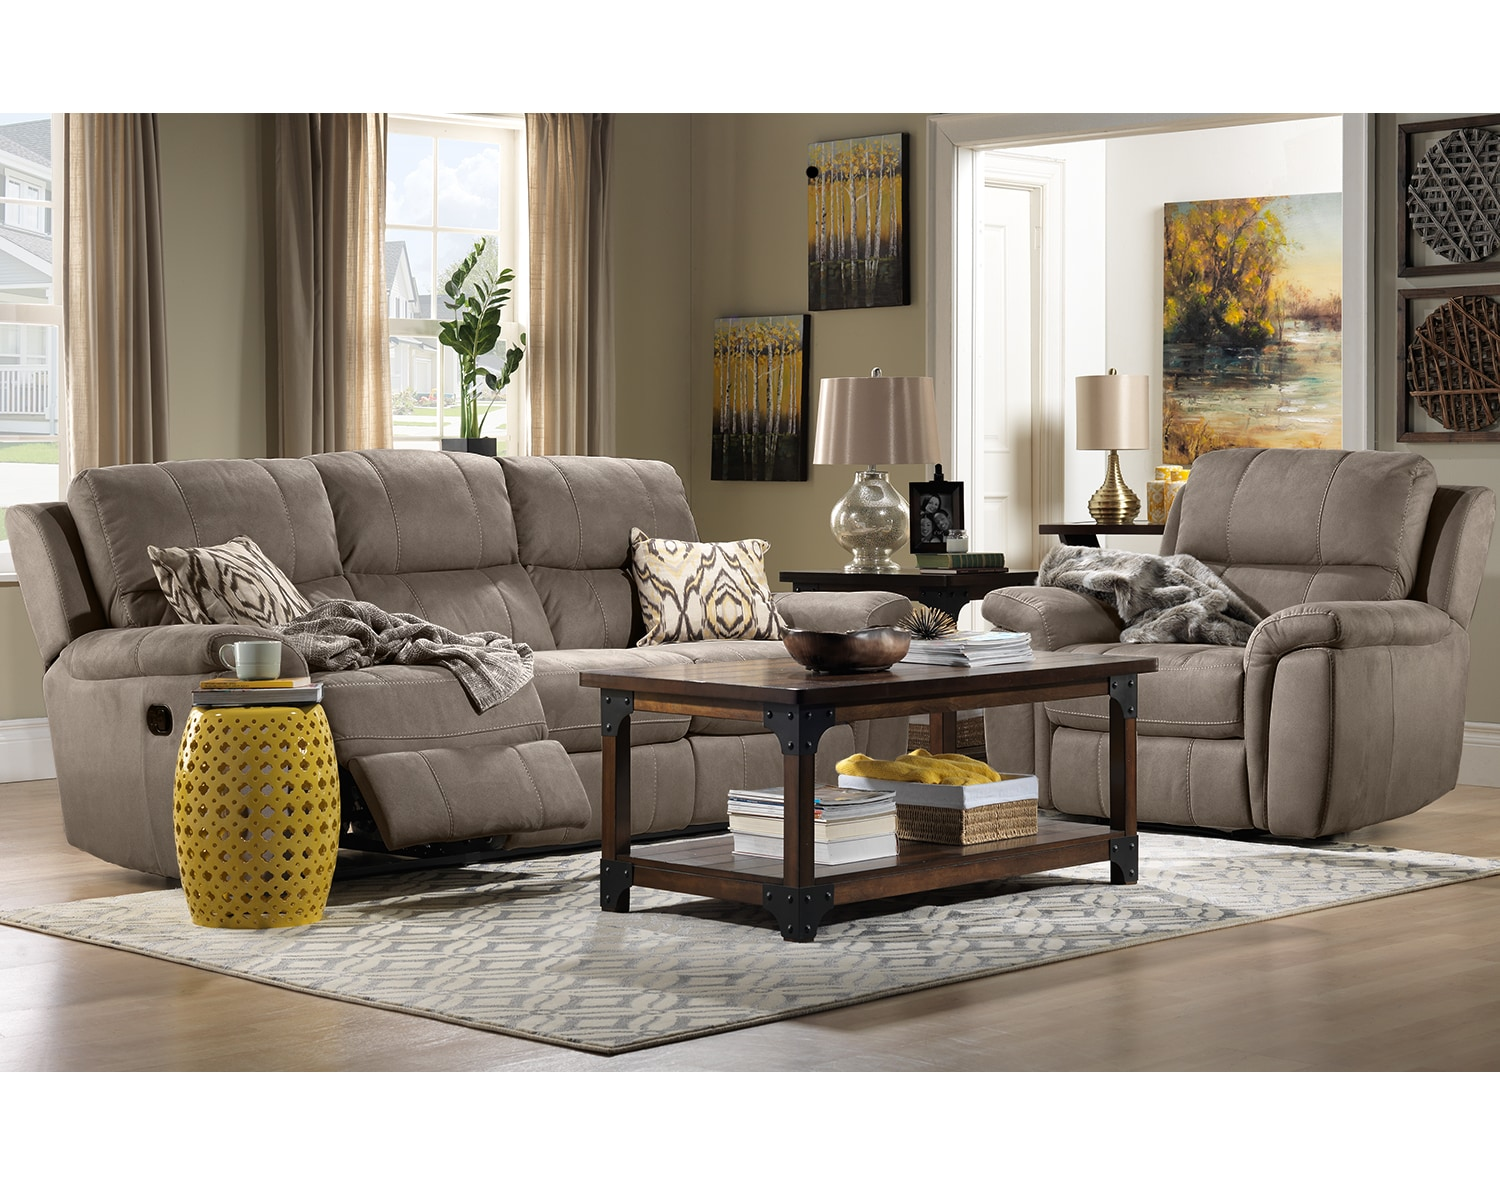 The Roarke Living Room Collection - Silver Grey